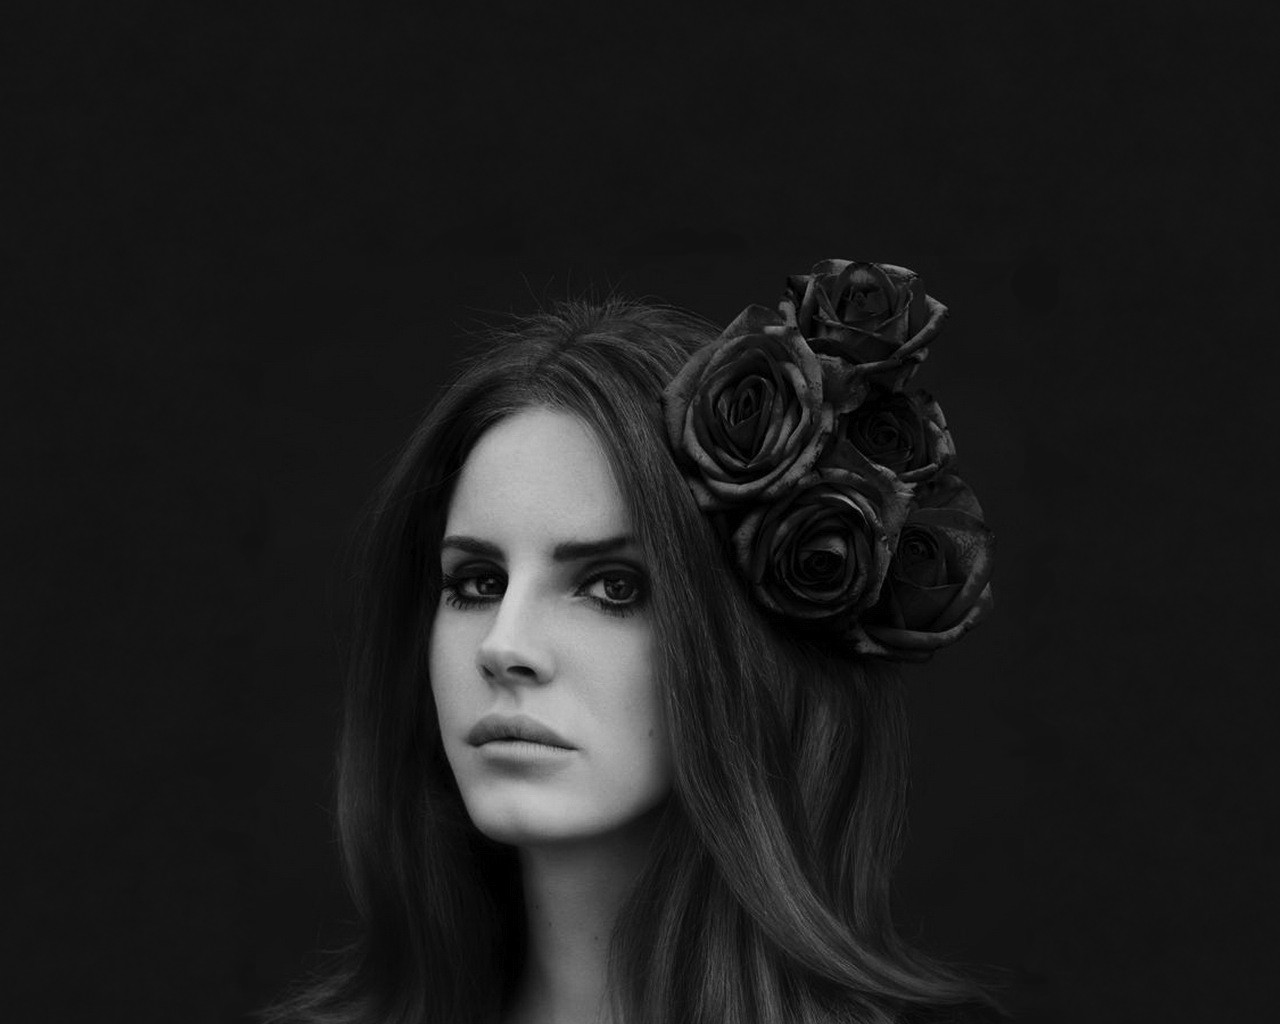 click to free download the wallpaper--Amazing TV Show Images, Beautiful Lana Del Rey Monochrome in Roses, Cool and Beautiful Girl 1280X1024 free wallpaper download